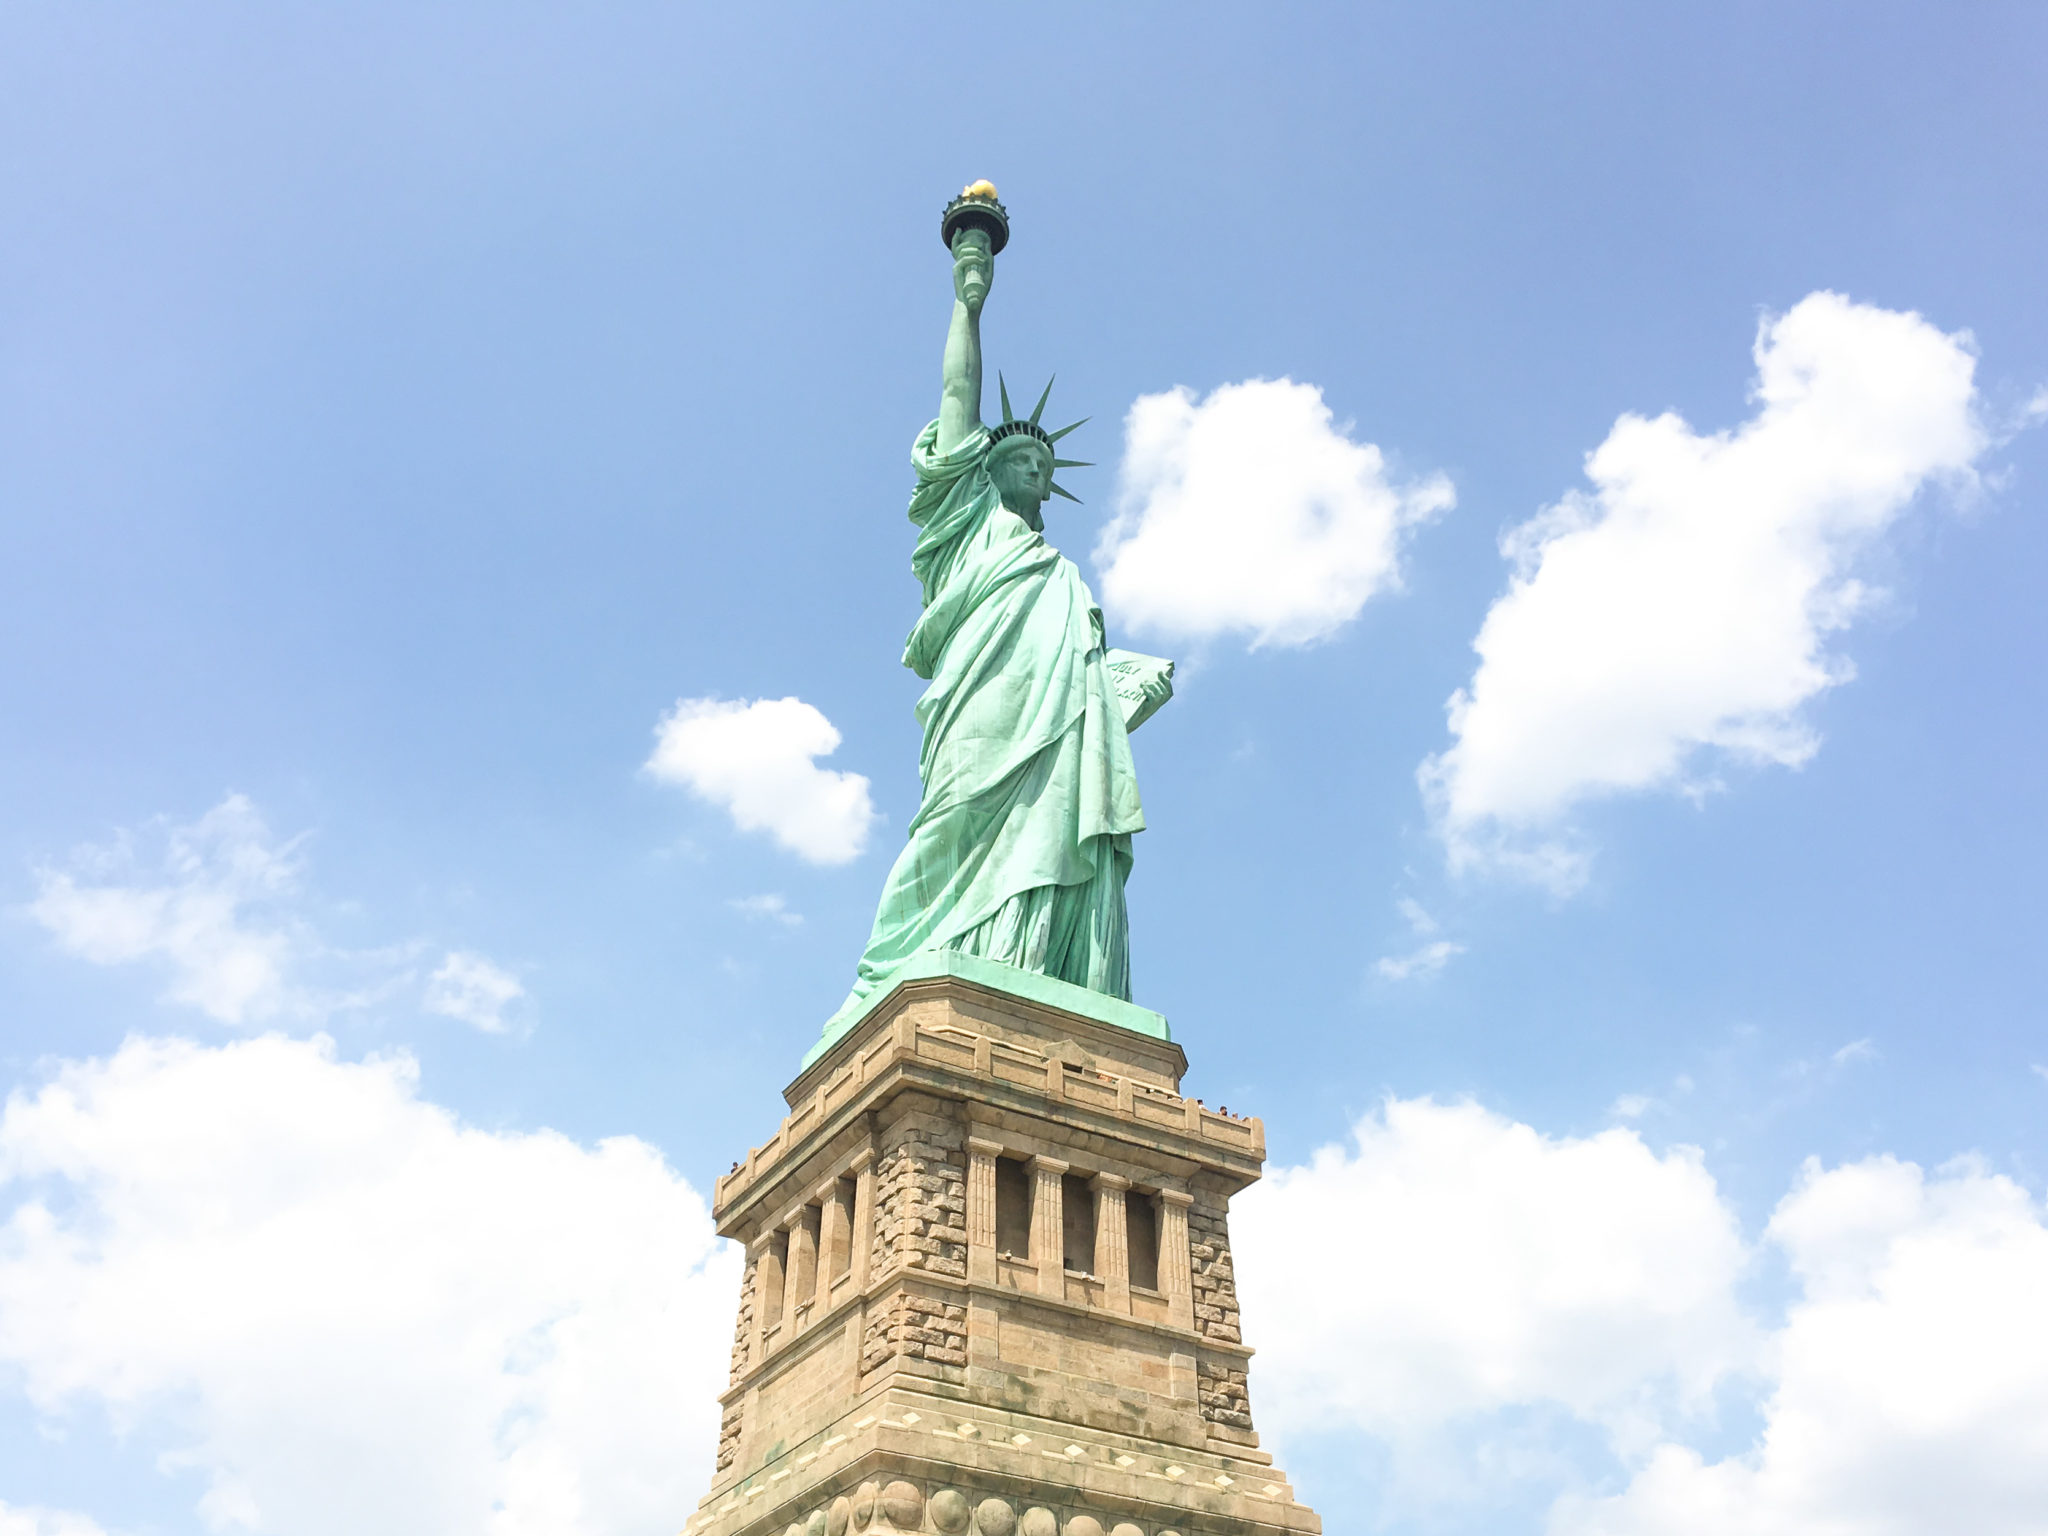 5 Tips For Visiting The Statue Of Liberty